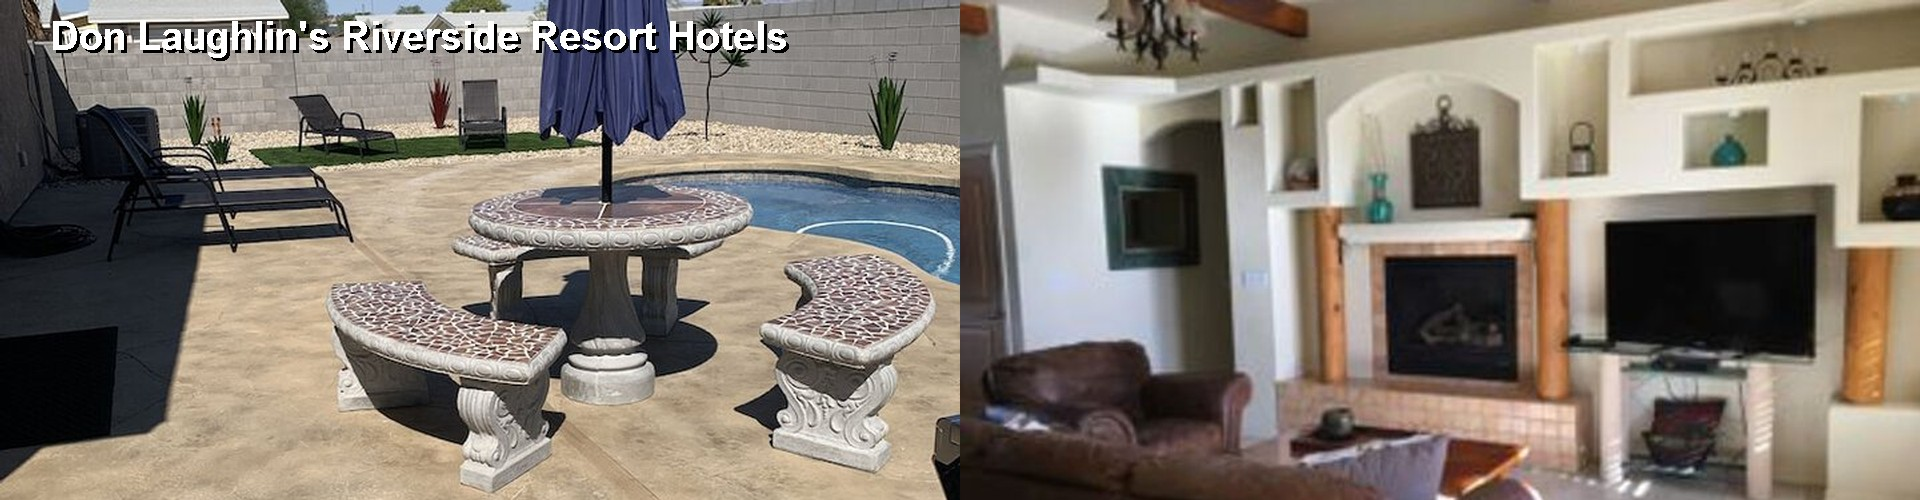 5 Best Hotels near Don Laughlin's Riverside Resort